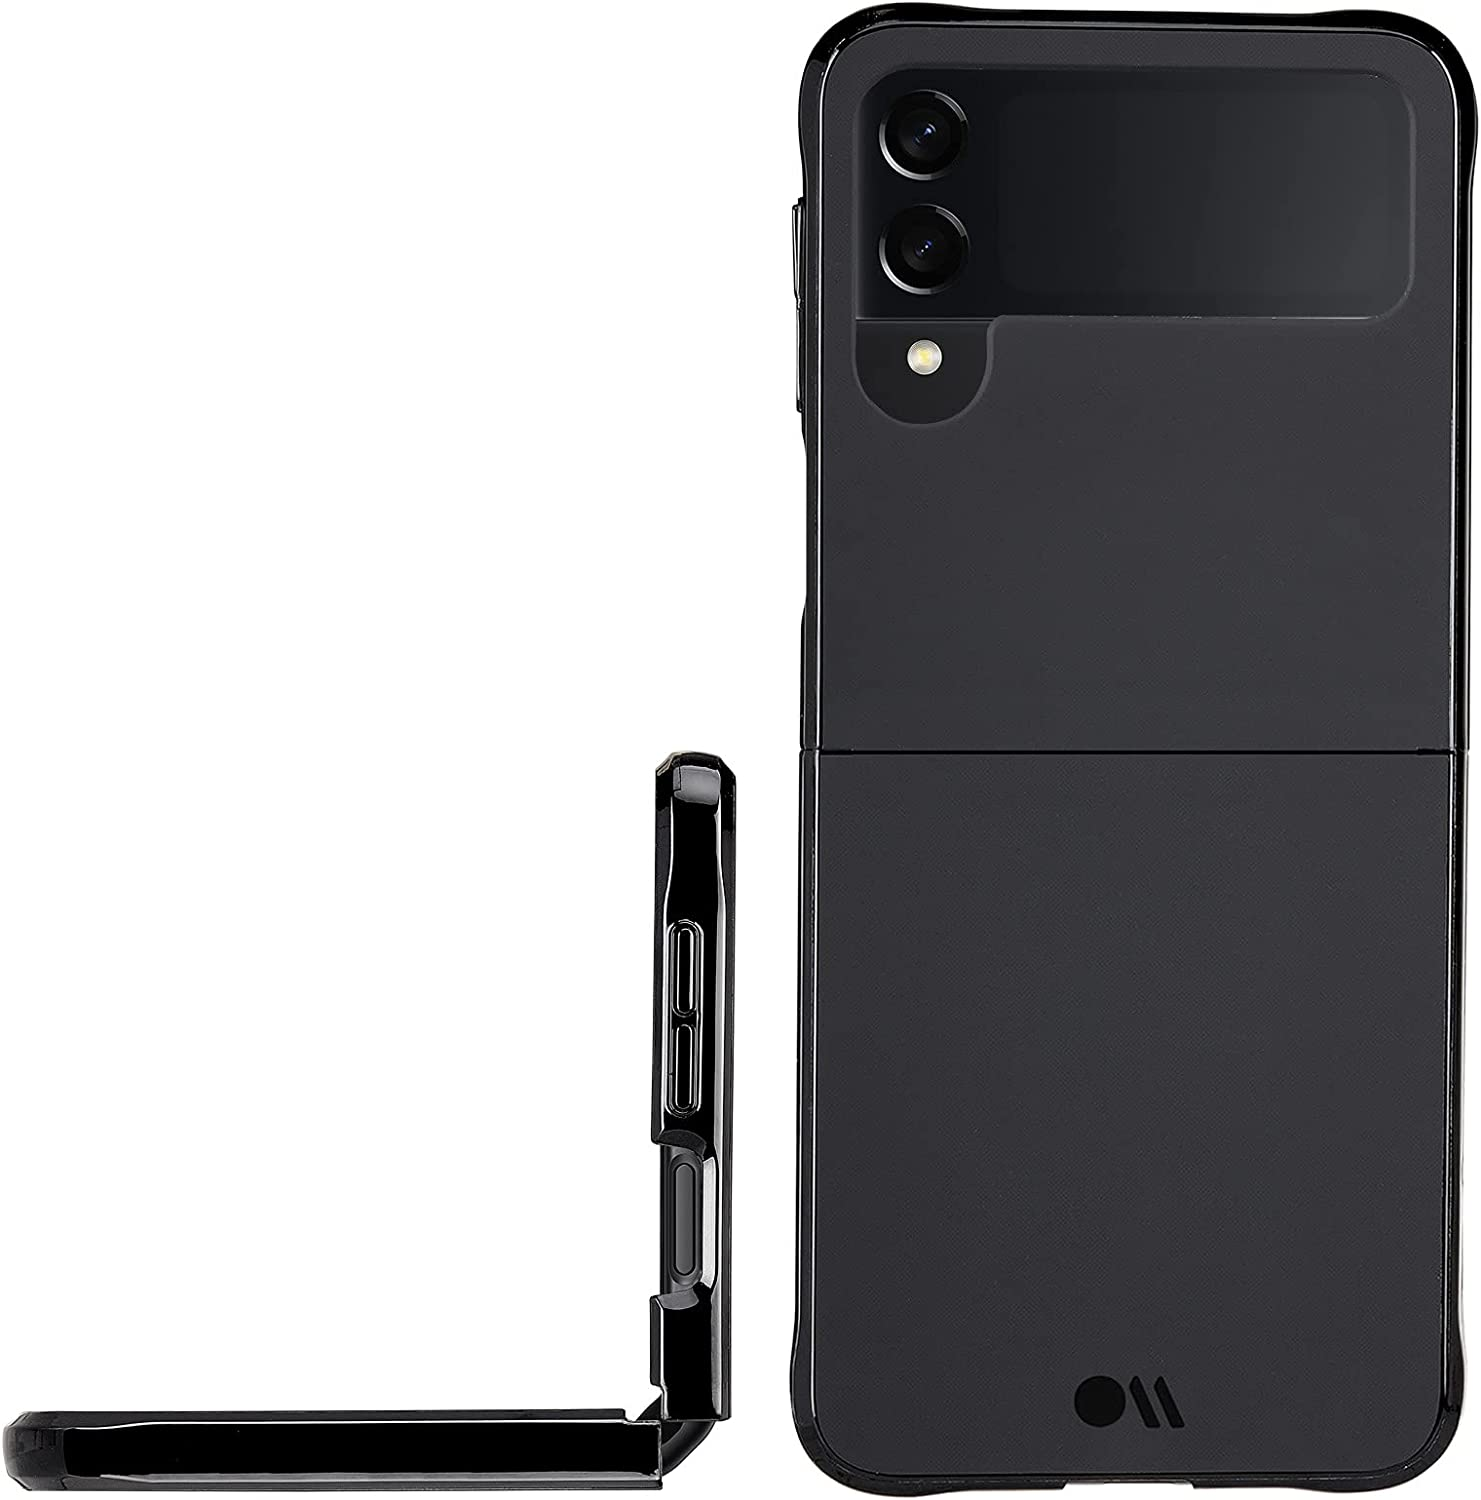 Case-Mate - Tough - Case for Samsung Galaxy Z Flip 3 5G - 10 ft Drop Protection - 6.5 inch - Black